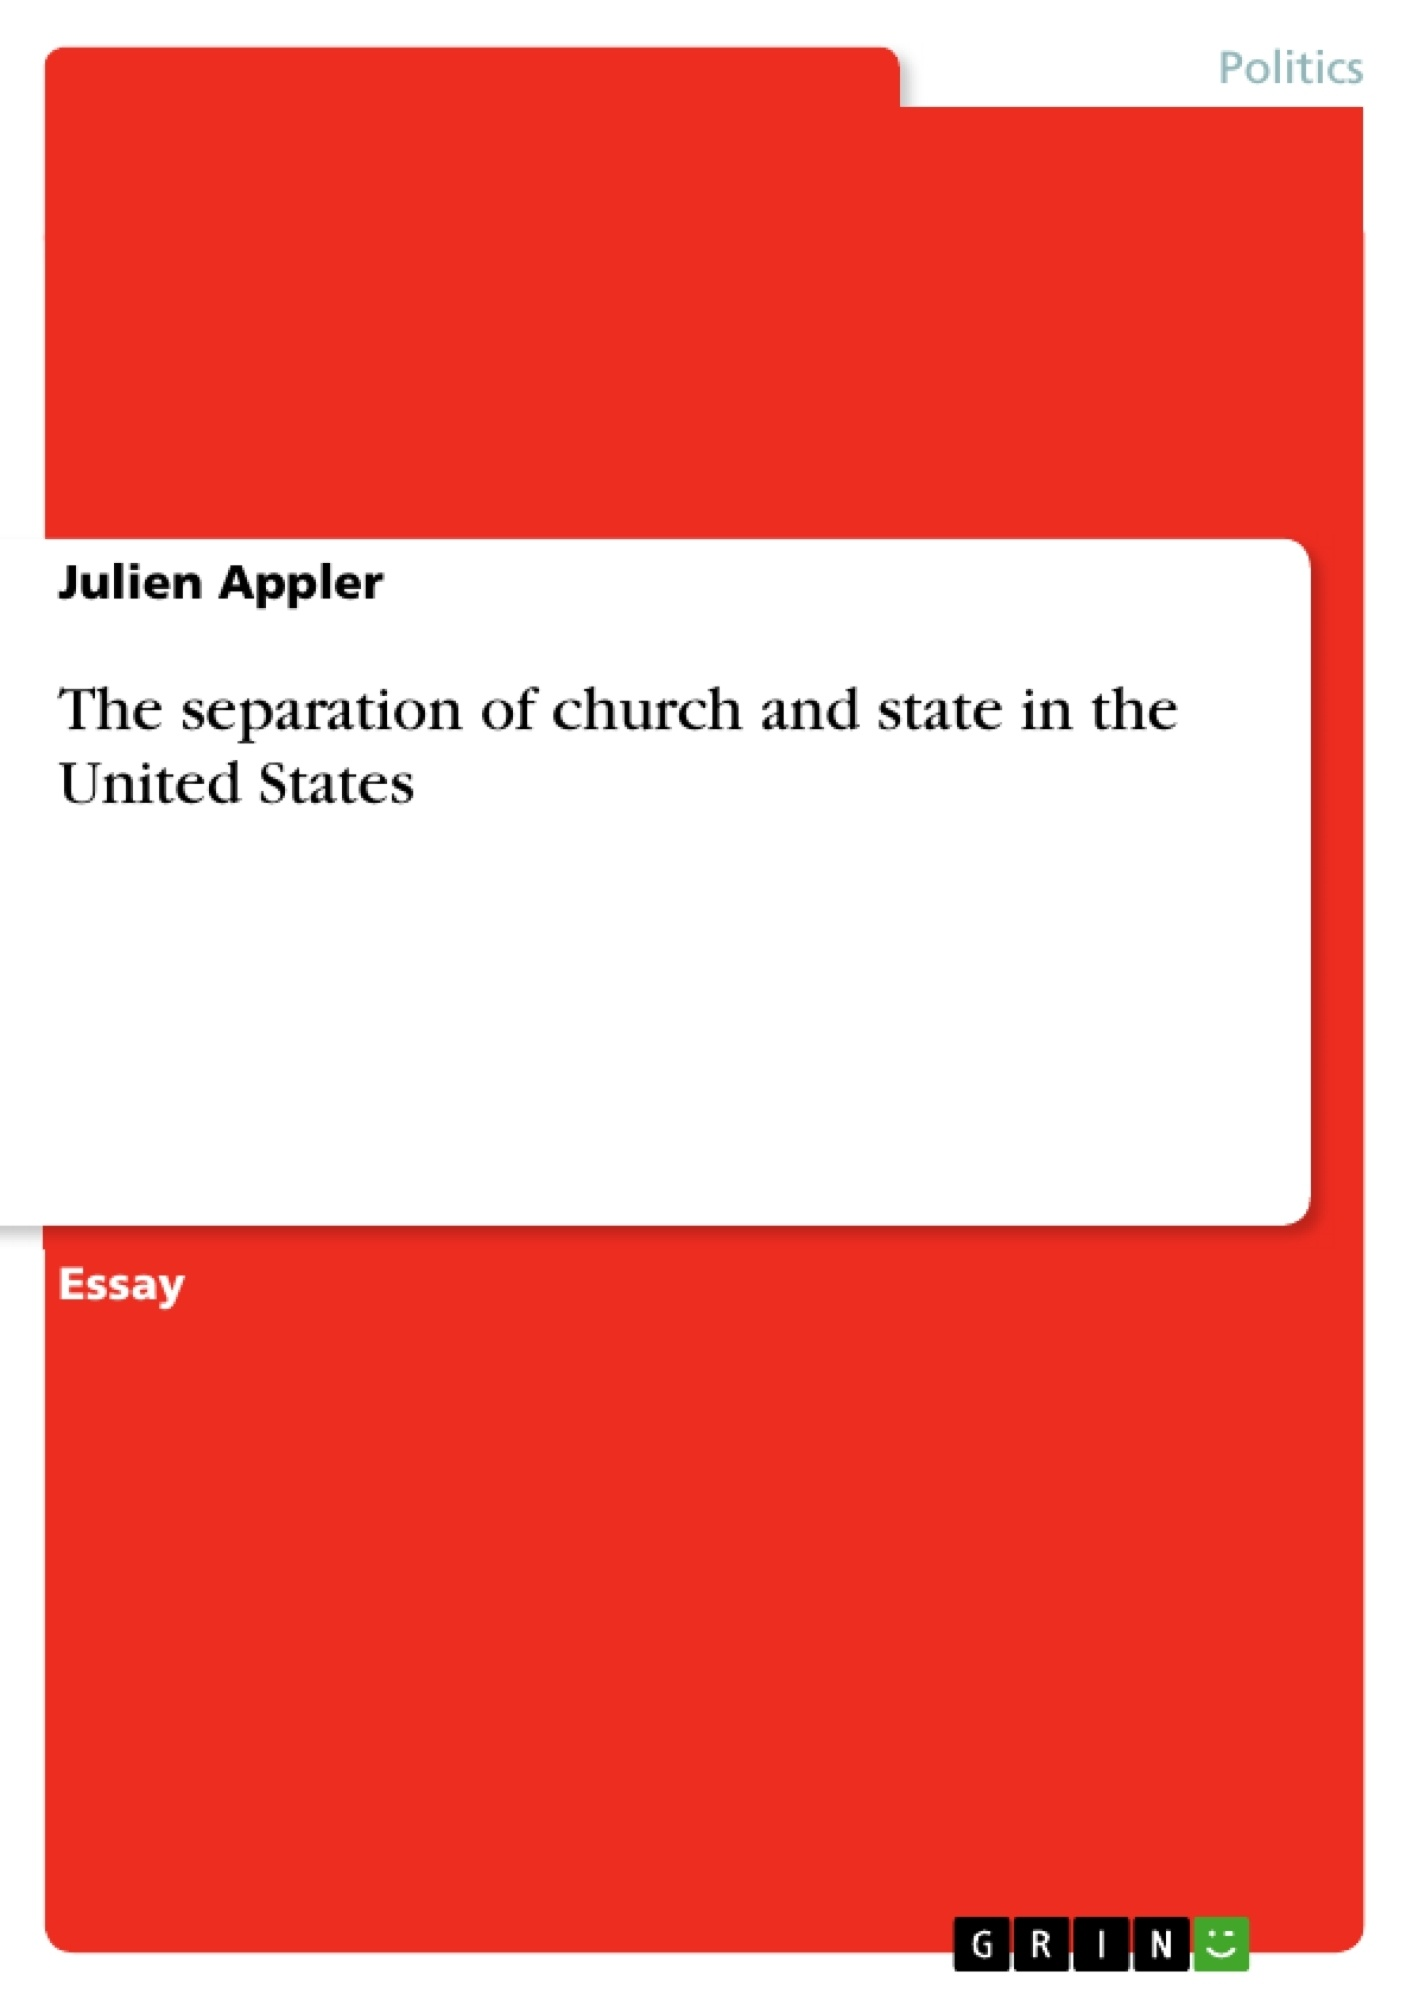 Title: The separation of church and state in the United States